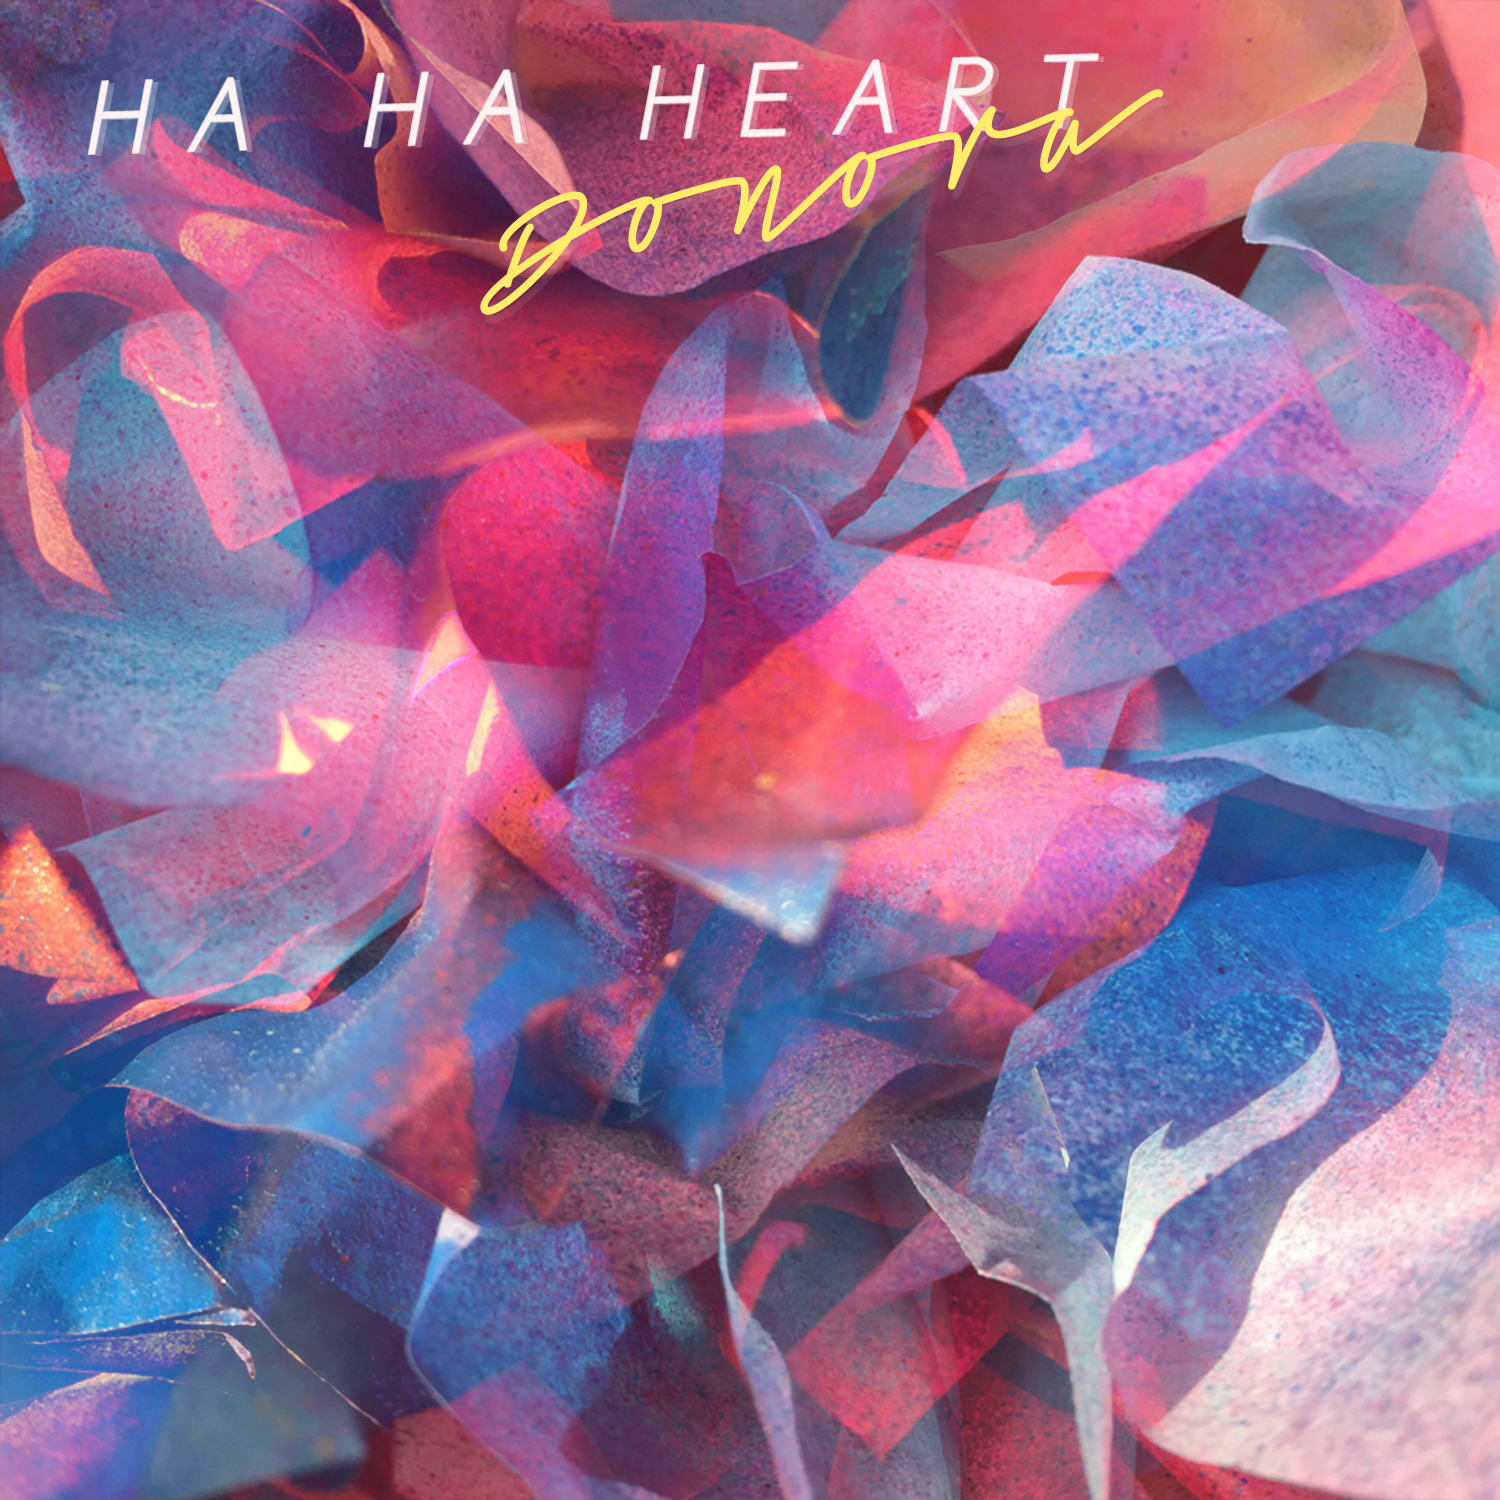 Ha Ha Heart artwork (1).jpg